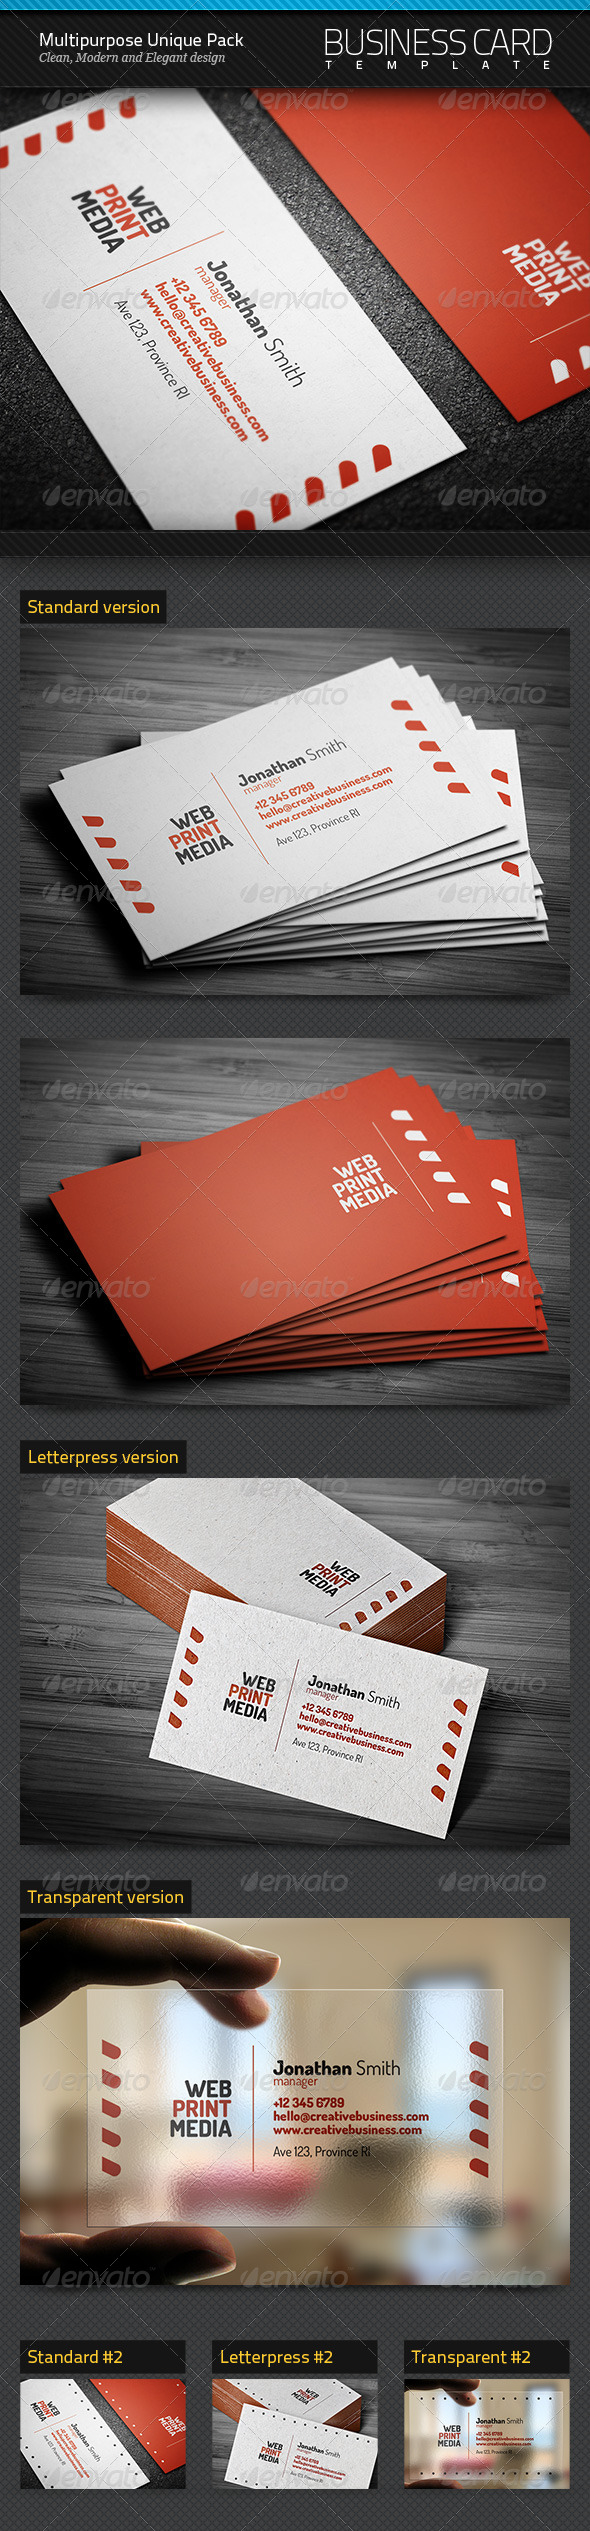 Multipurpose Unique Pack of Business Cards - Creative Business Cards